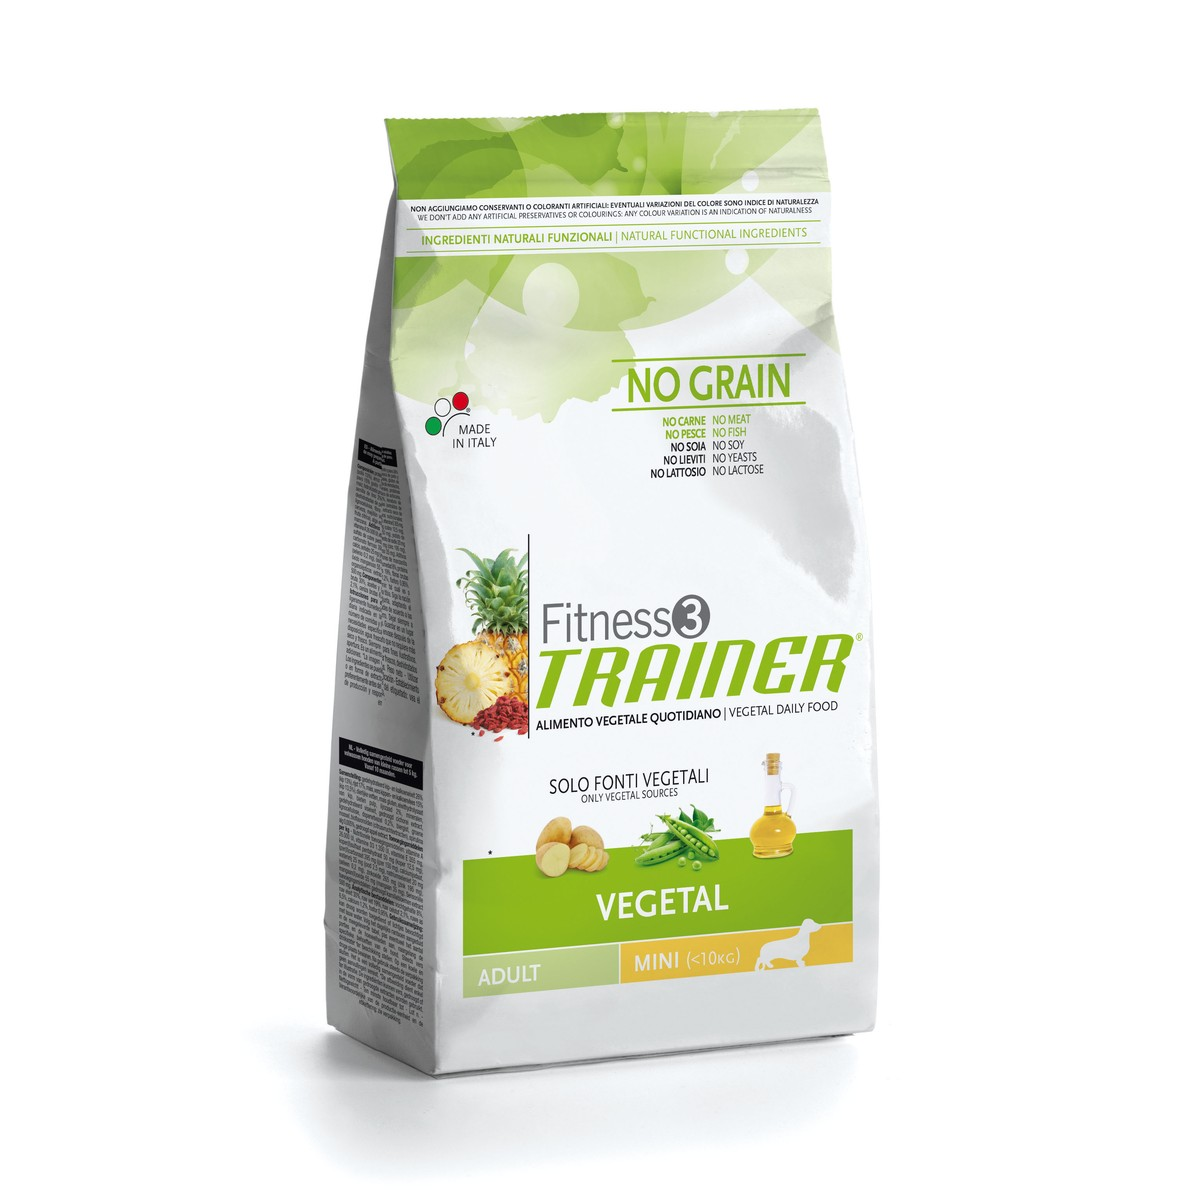 Trainer fitness 3 vegetal mini 2kg  2kg